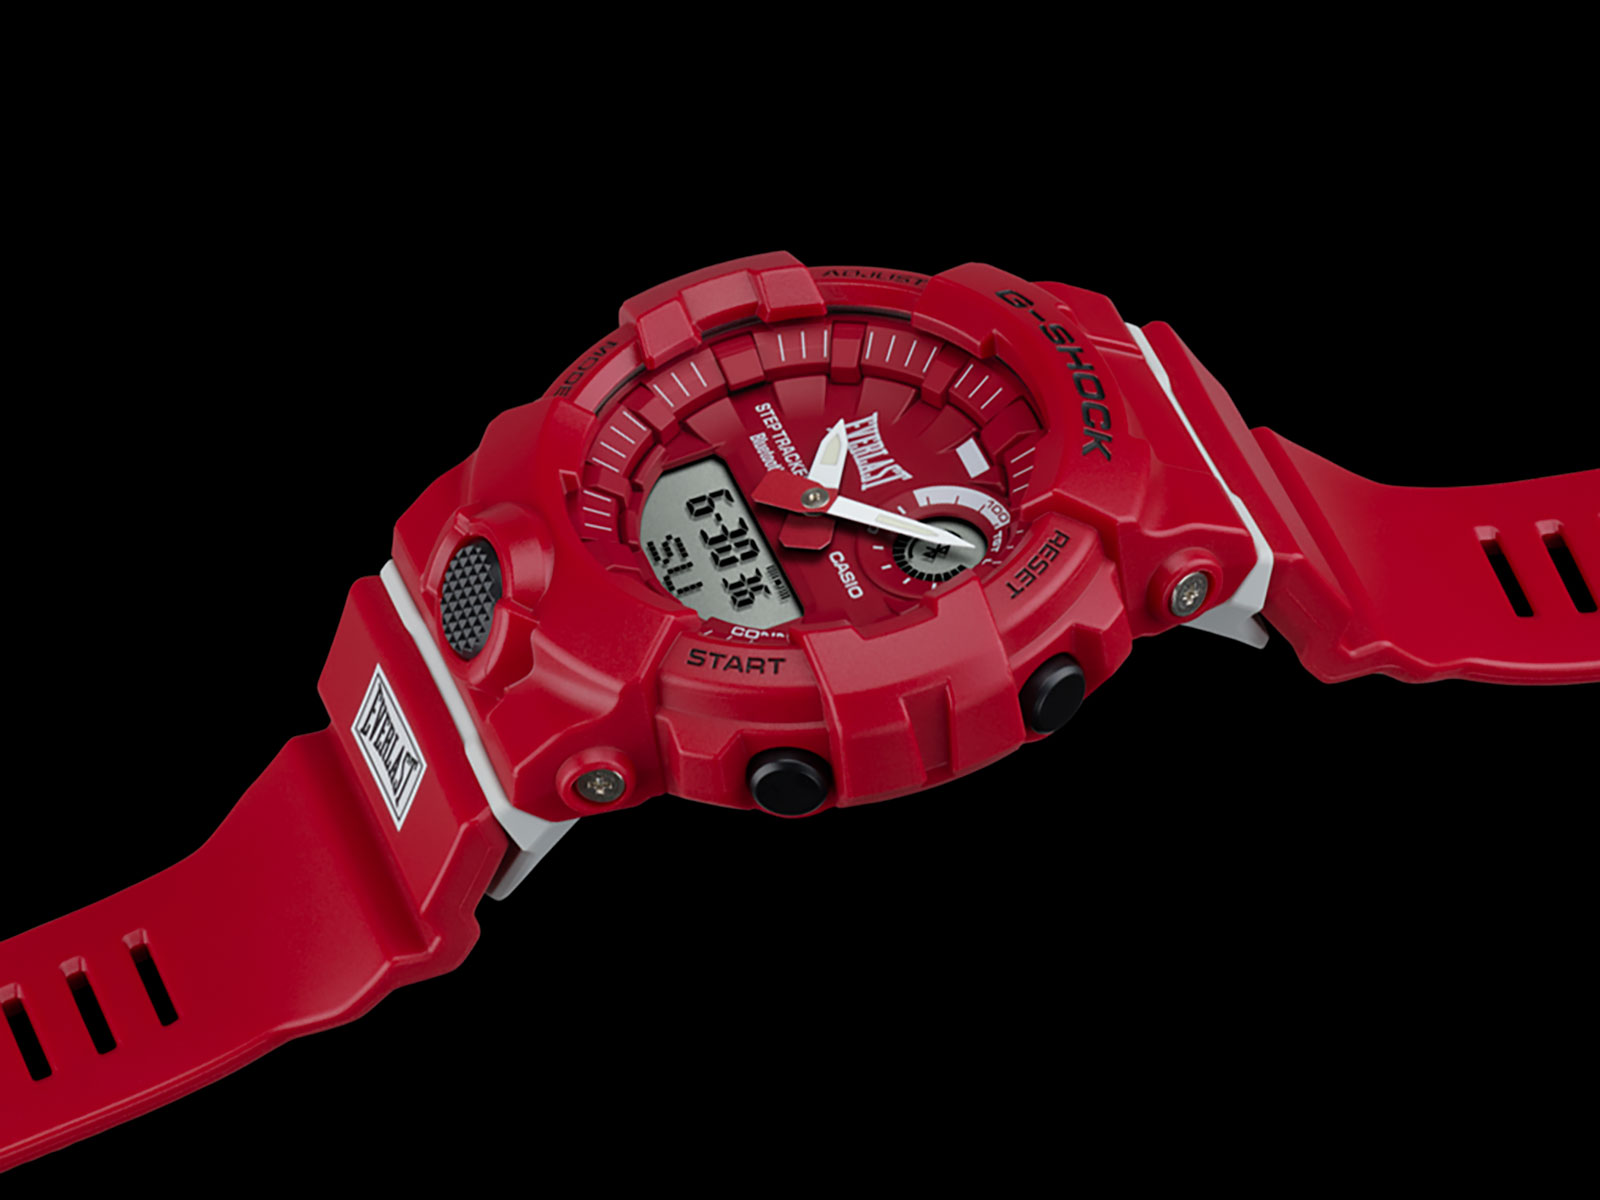 Casio G shock everlast watch